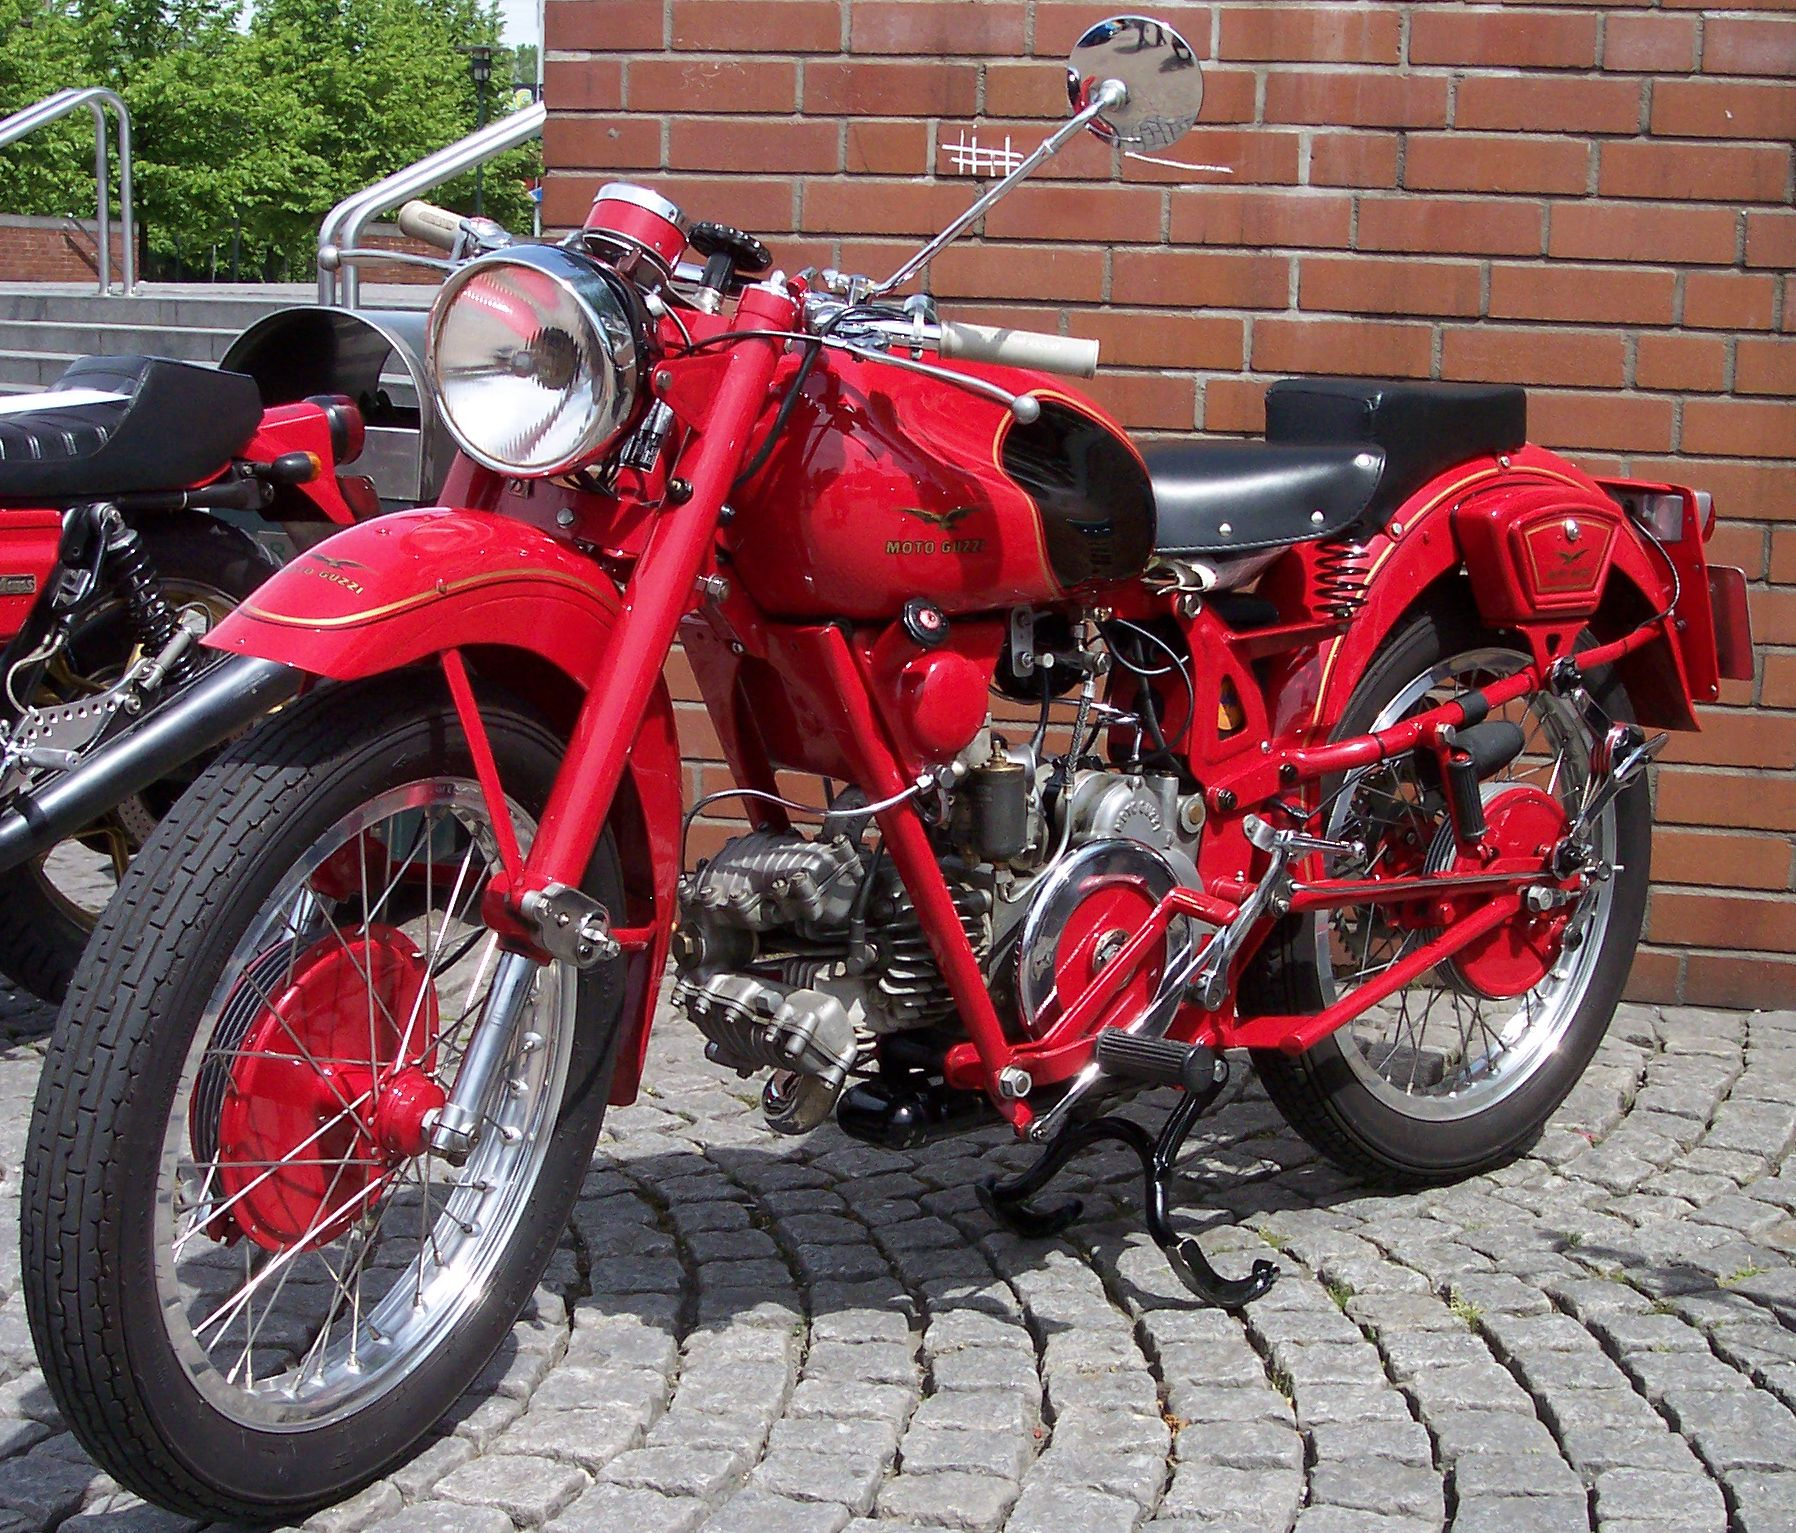 Moto guzzi gtv photo - 2